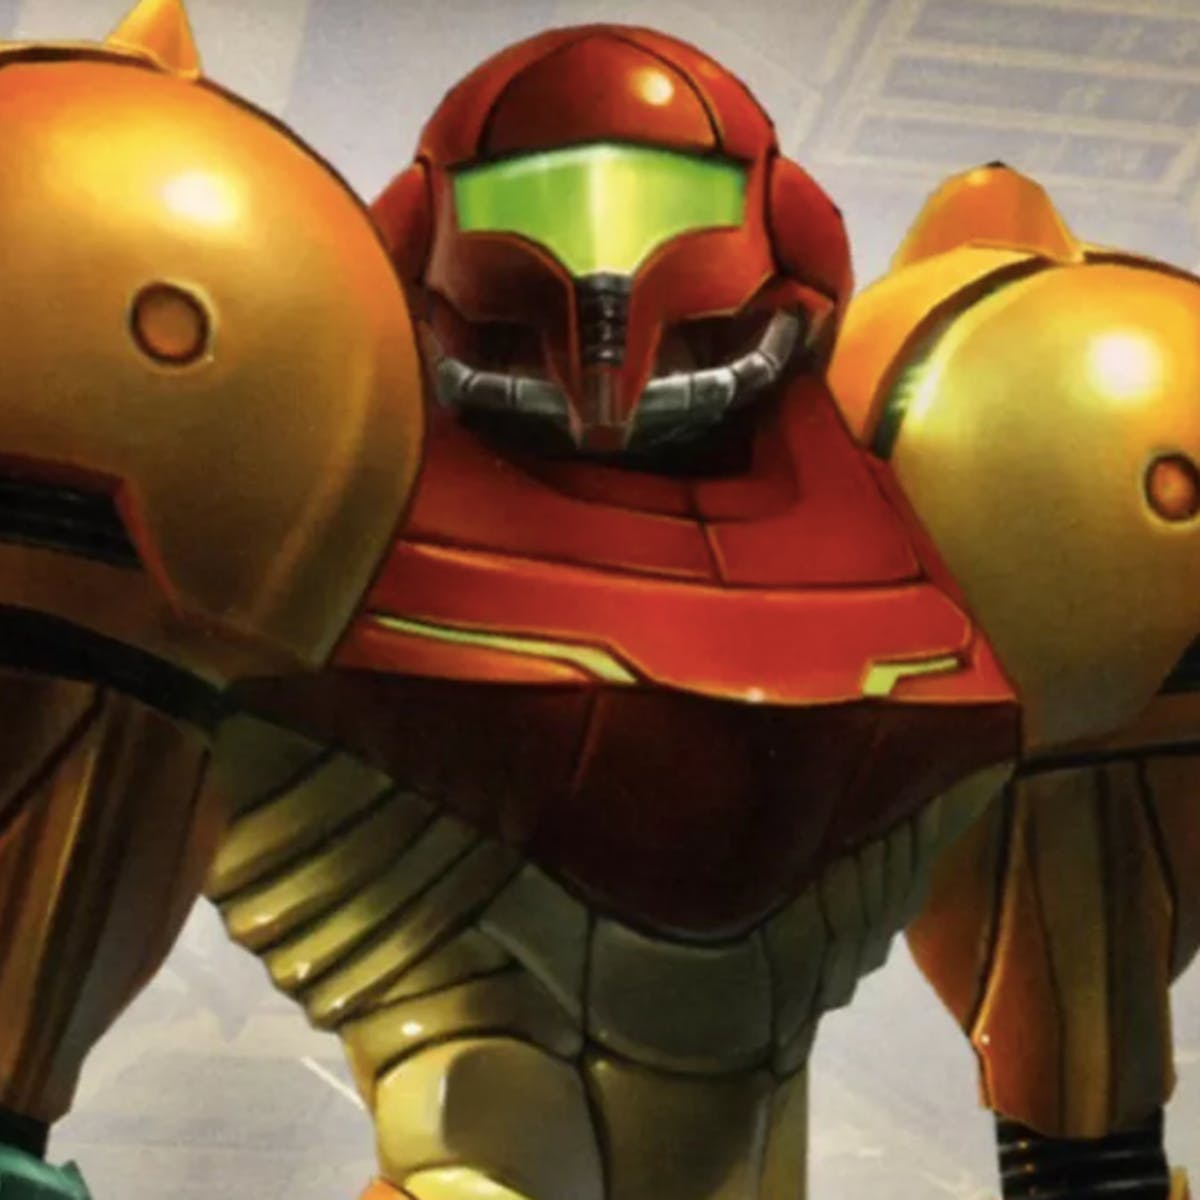 'Metroid Prime 4' Release Date on Switch May Not Arrive for 5 More Years